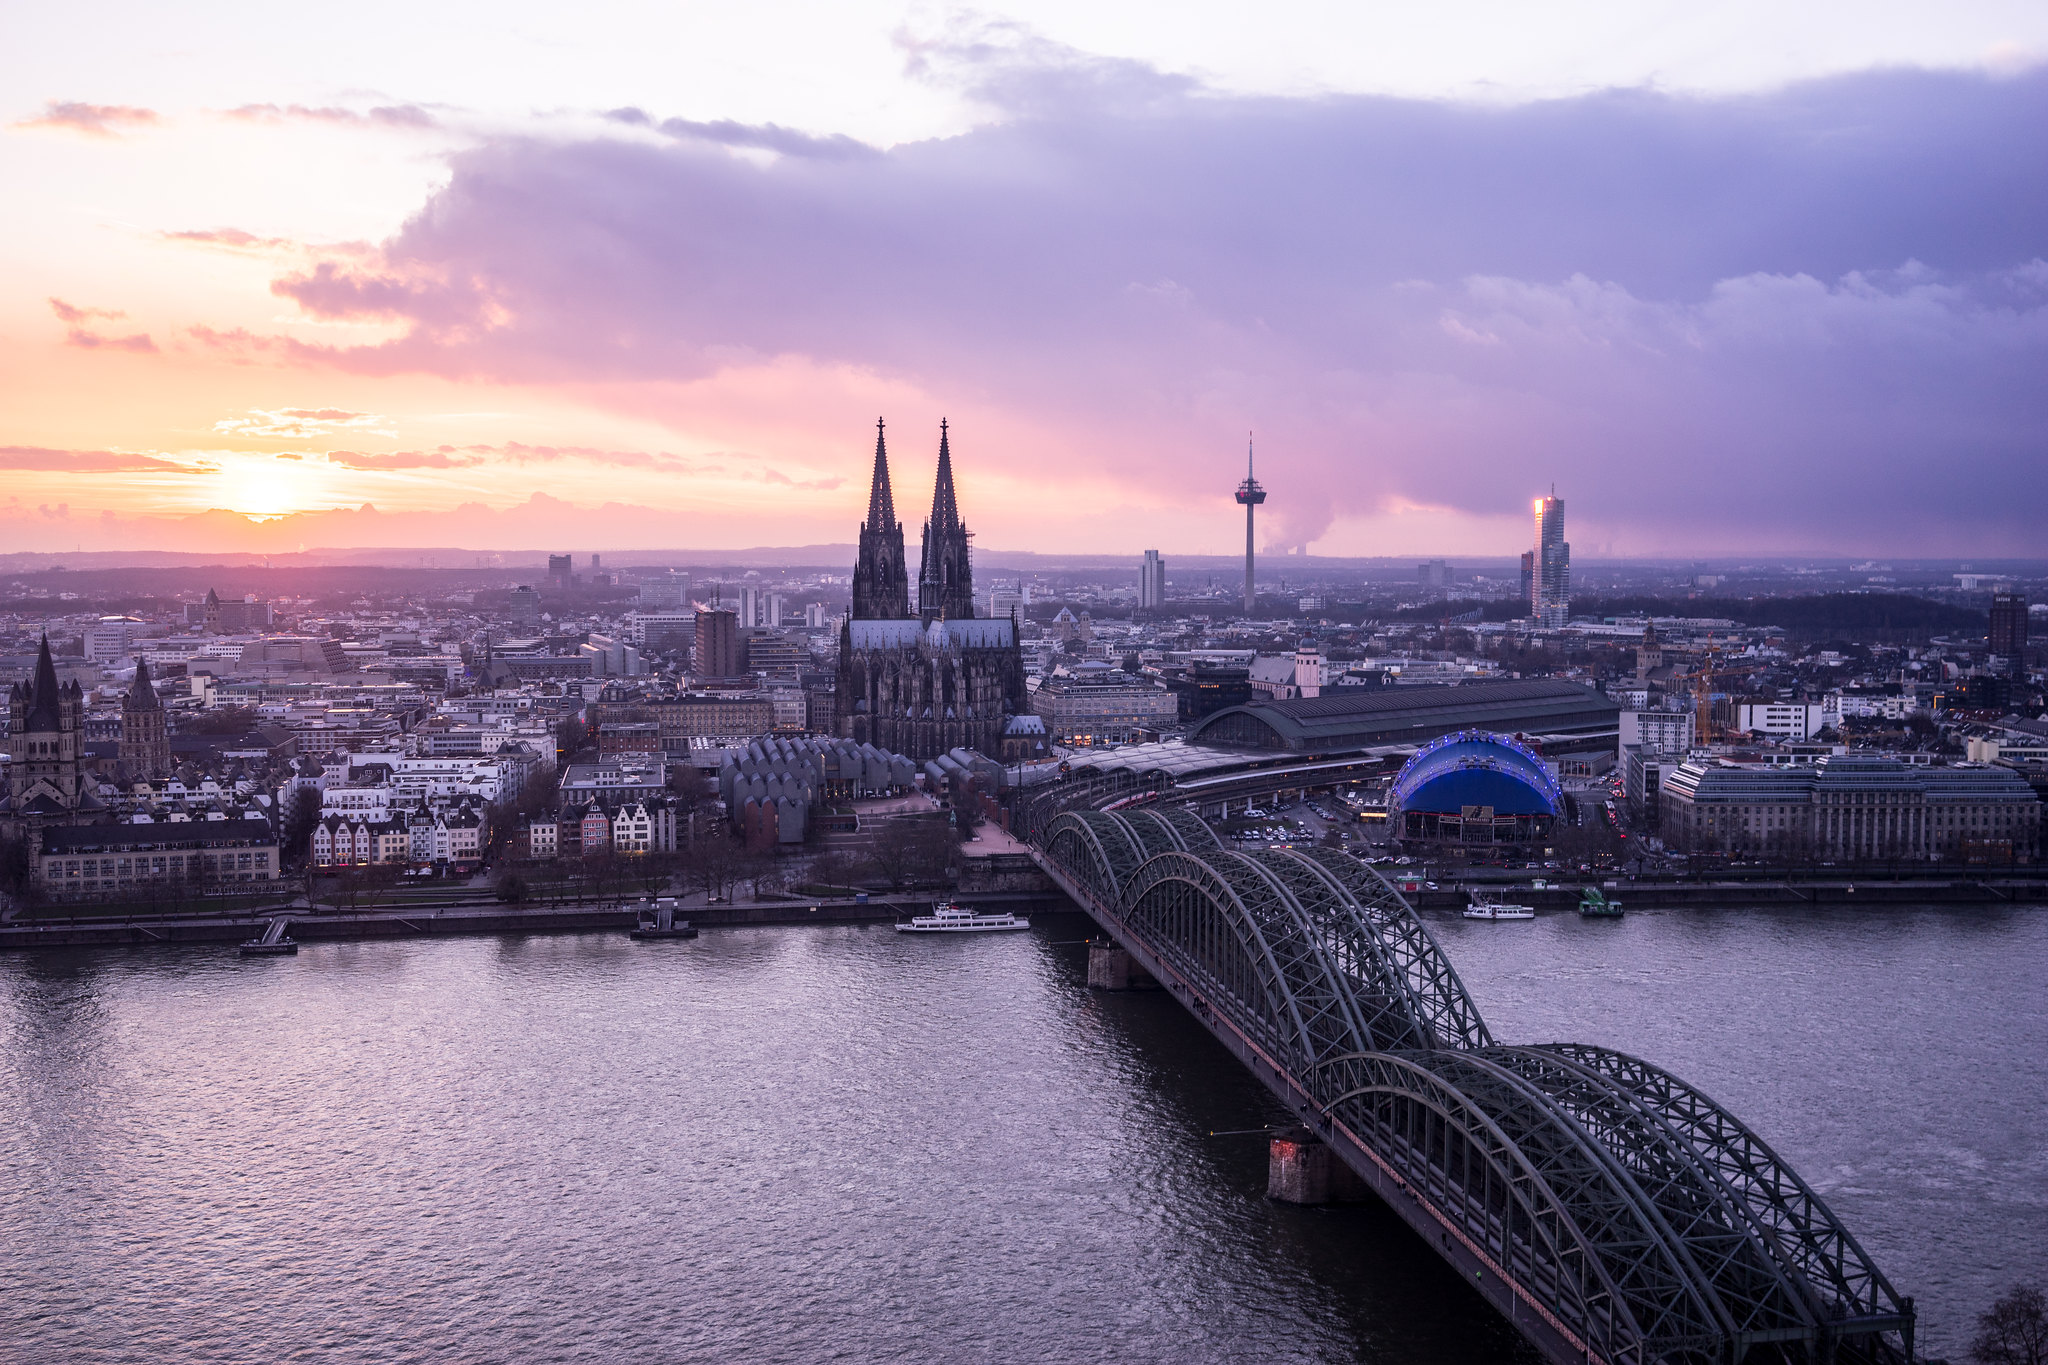 10 Instagrammable Places to Visit in Germany #Instaworthy